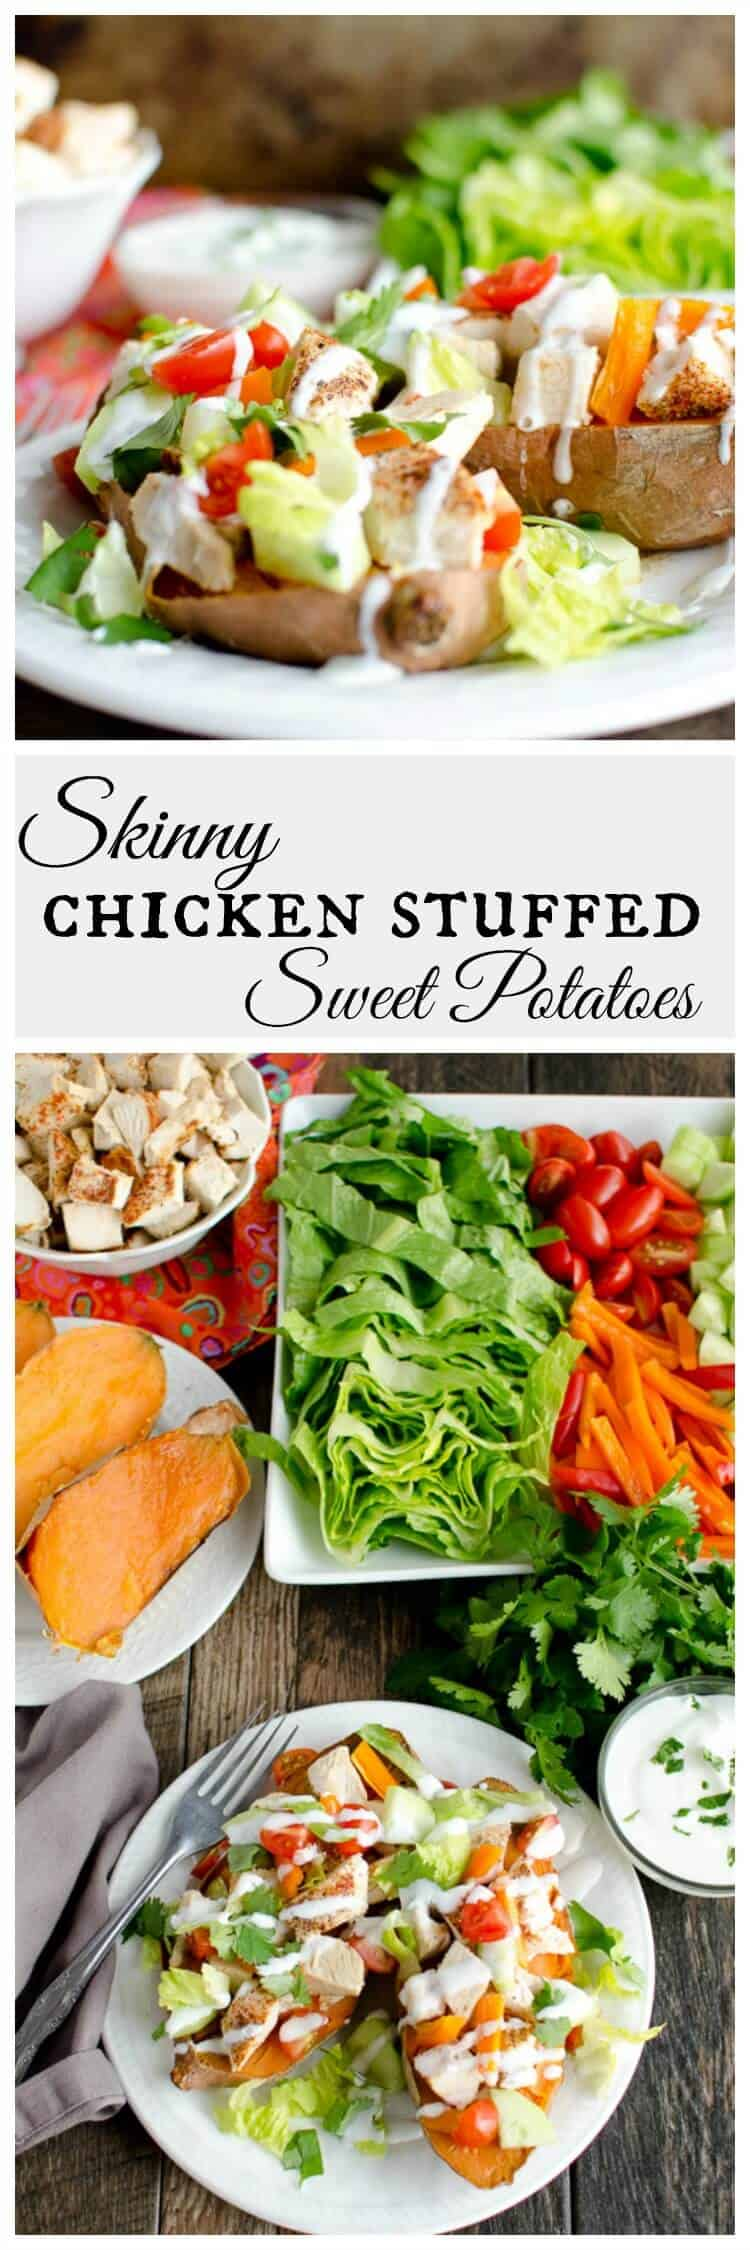 These healthy and light chicken stuffed sweet potatoes will leave you feeling energized and satisfied. Seasoned chicken, healthy veggies and crunchy lettuce, you can't go wrong. #sweetpotato #easydinner  via @artfrommytable